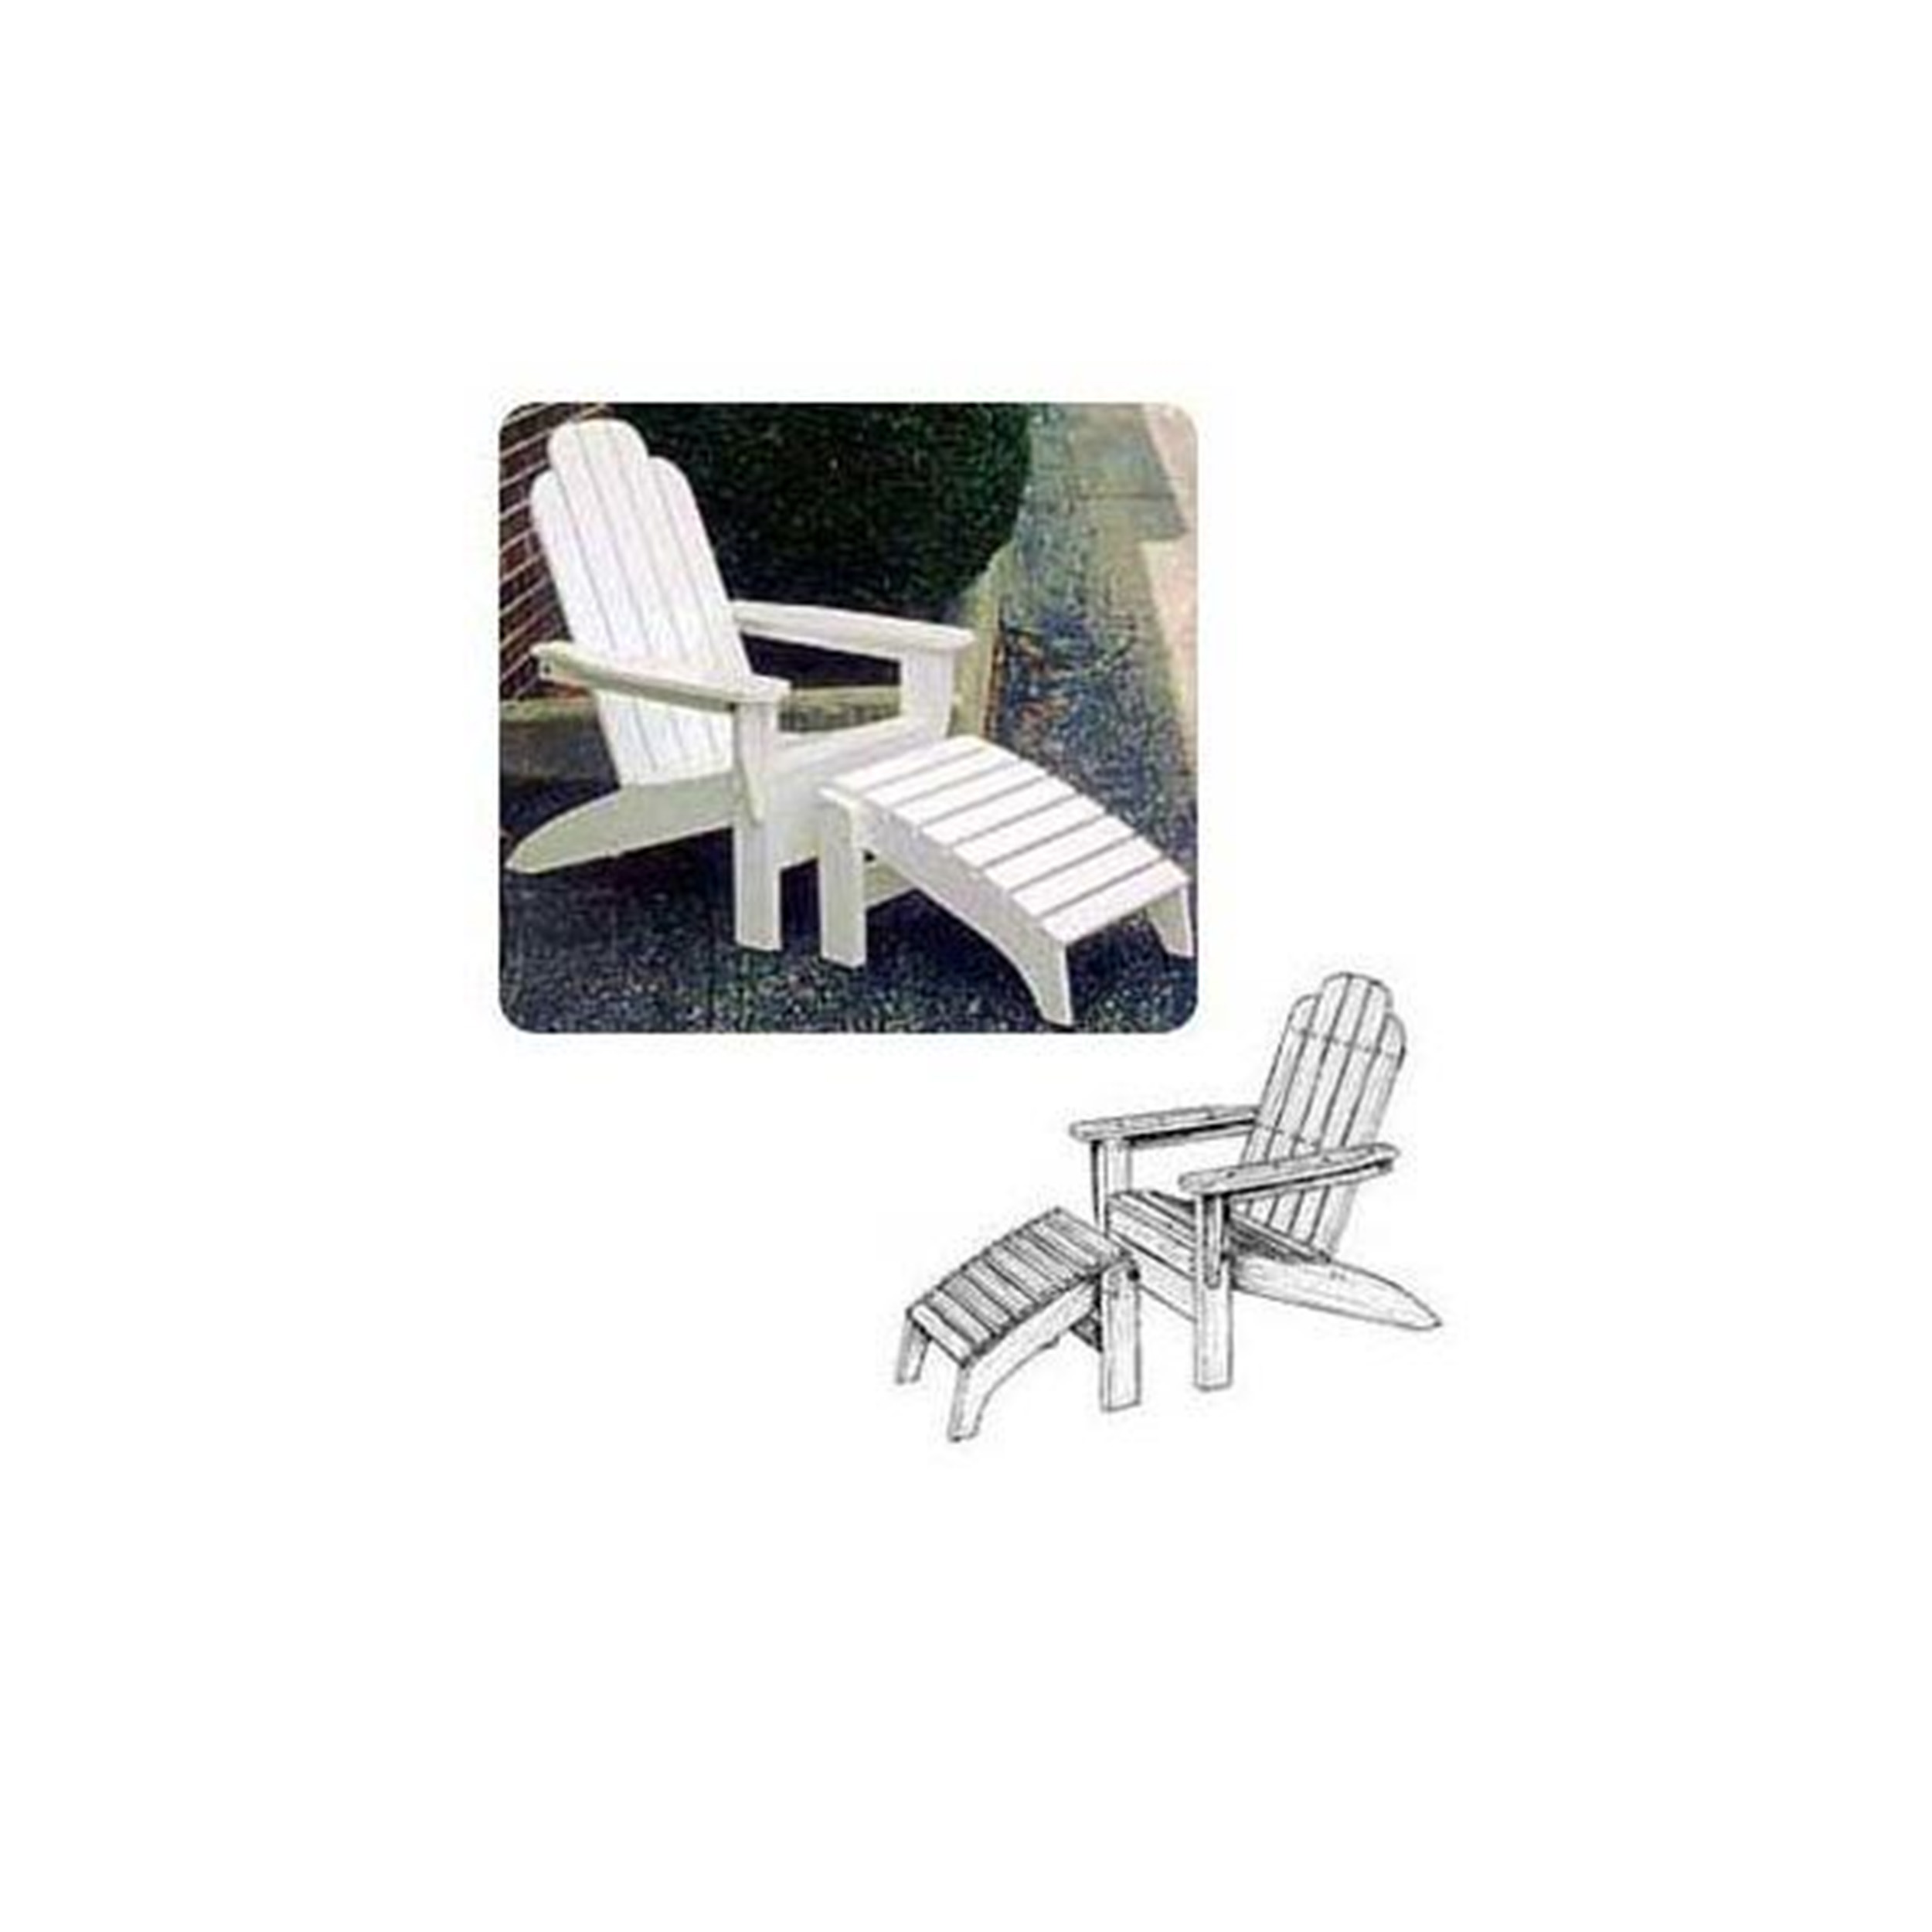 Woodworking Paper Plan to Build Adirondack Folding Chair and Footrest by